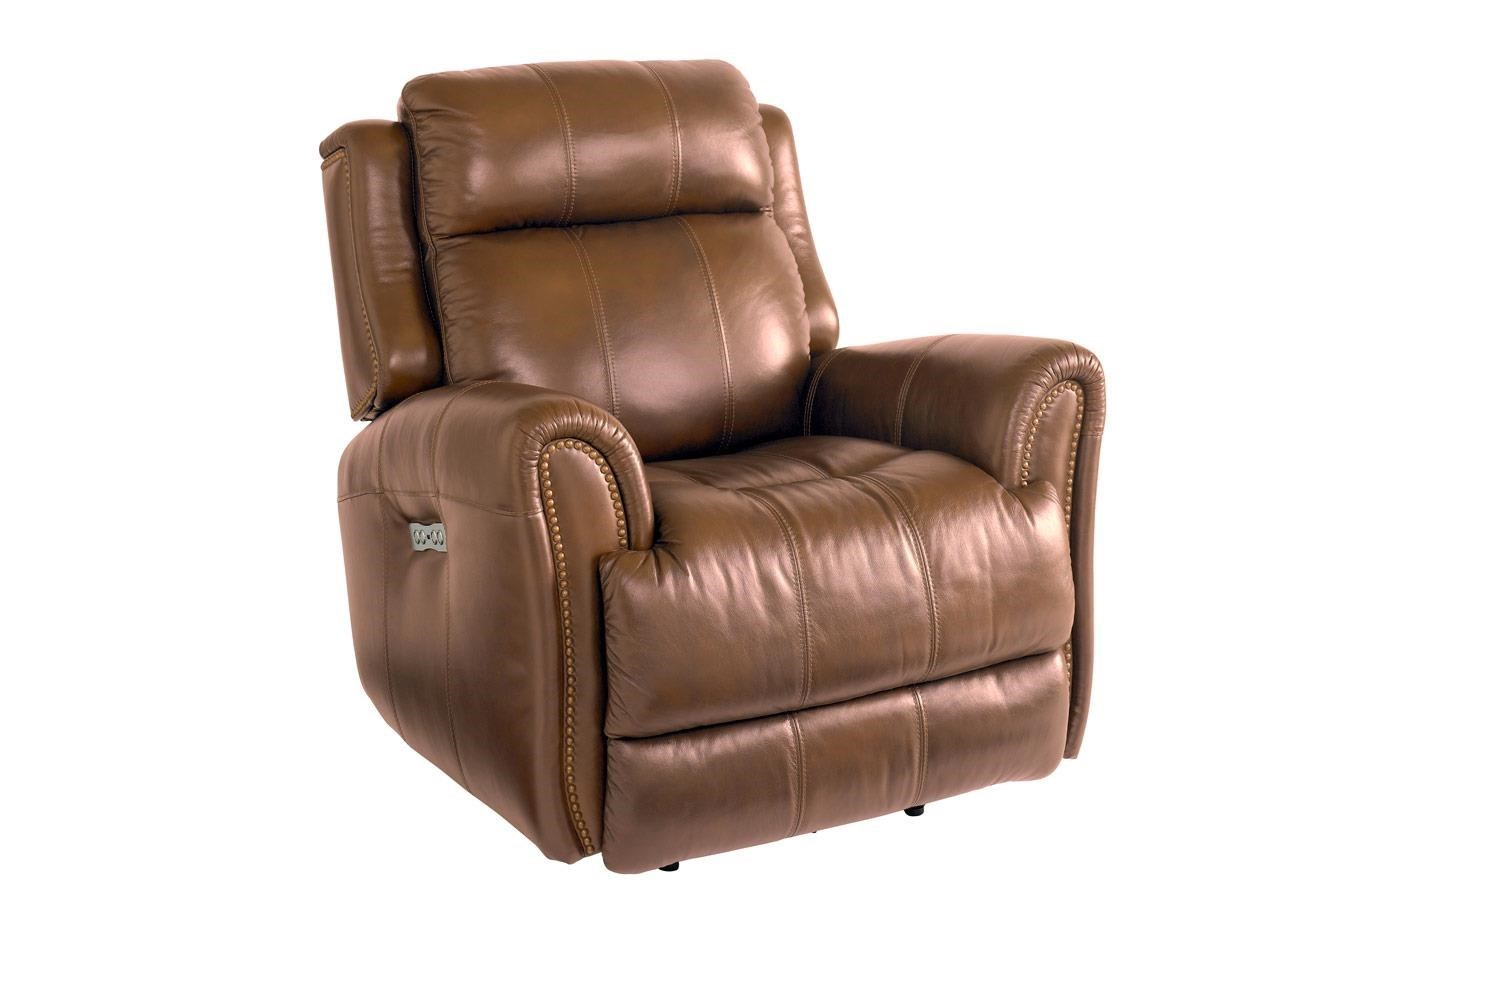 Bassett Marquee Umber Leather Power Wallsaver Recliner With Power  Headrest(color May Differ From Image)